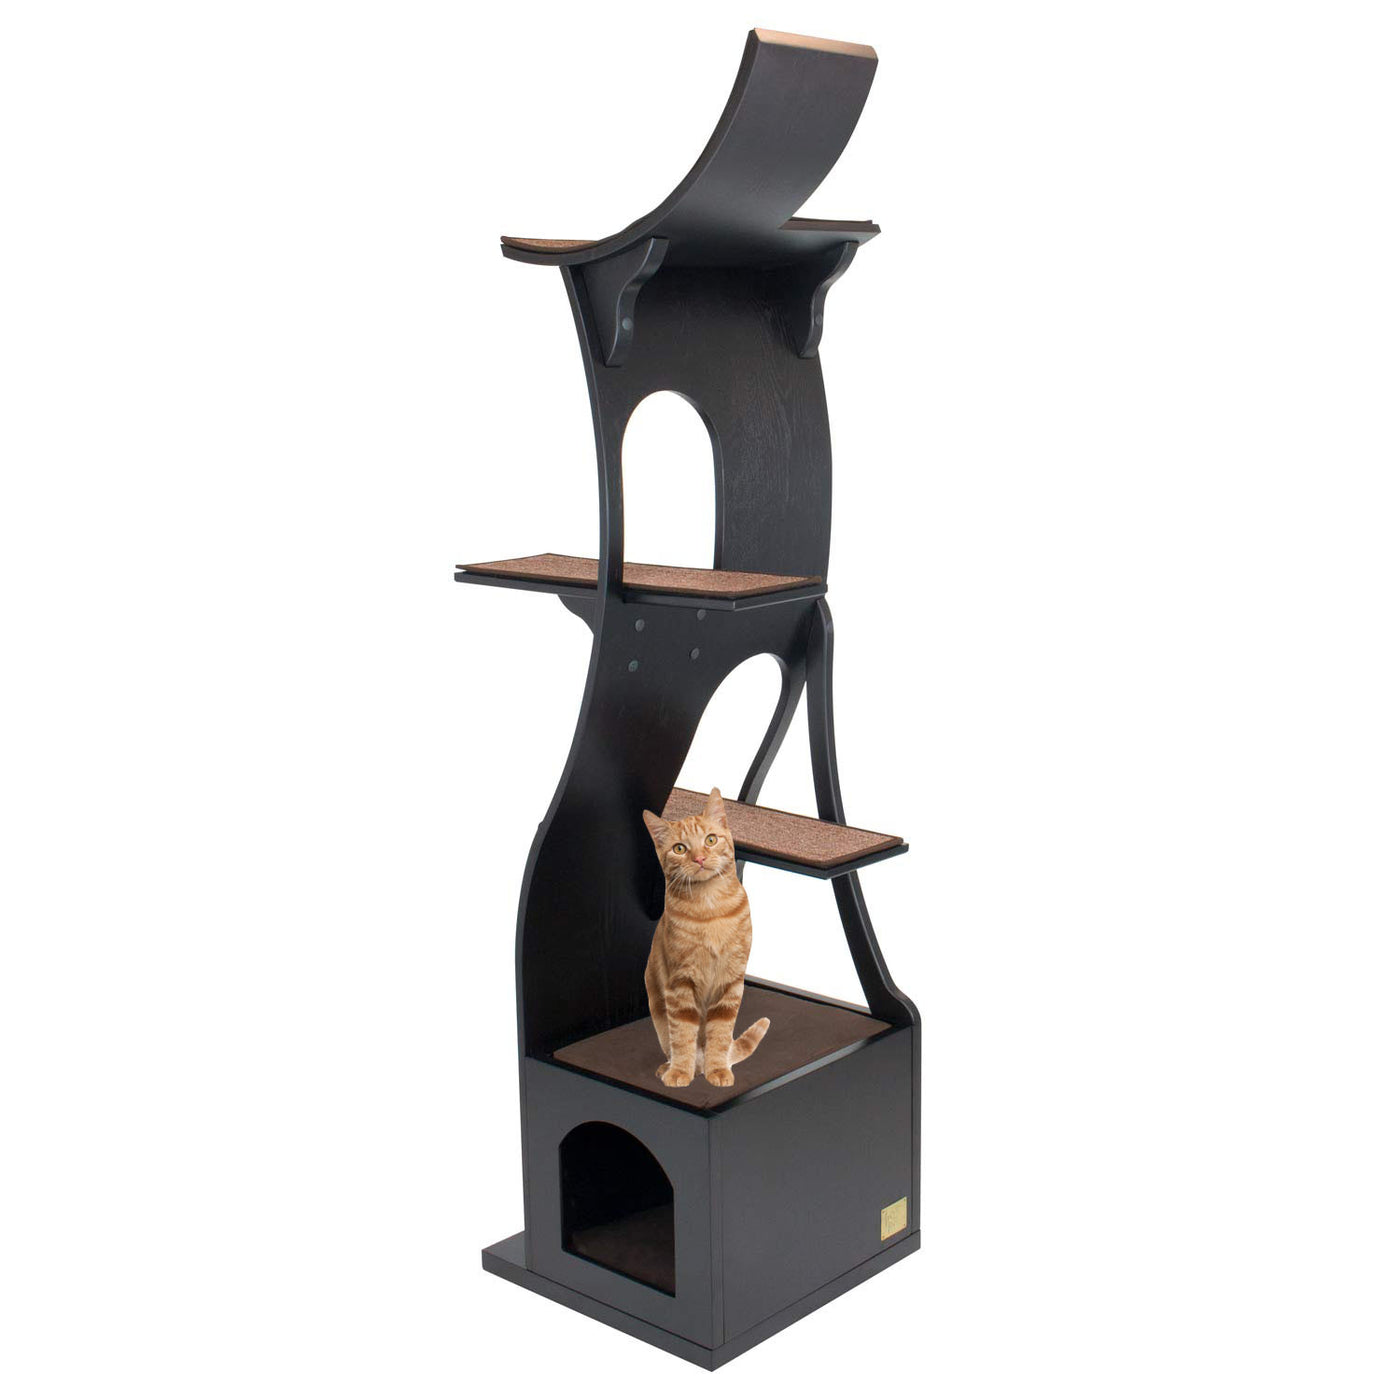 Wood Cat Furniture Part - 39: Stylish Wood Cat Tree Tower. Angled Front View With Cat ...